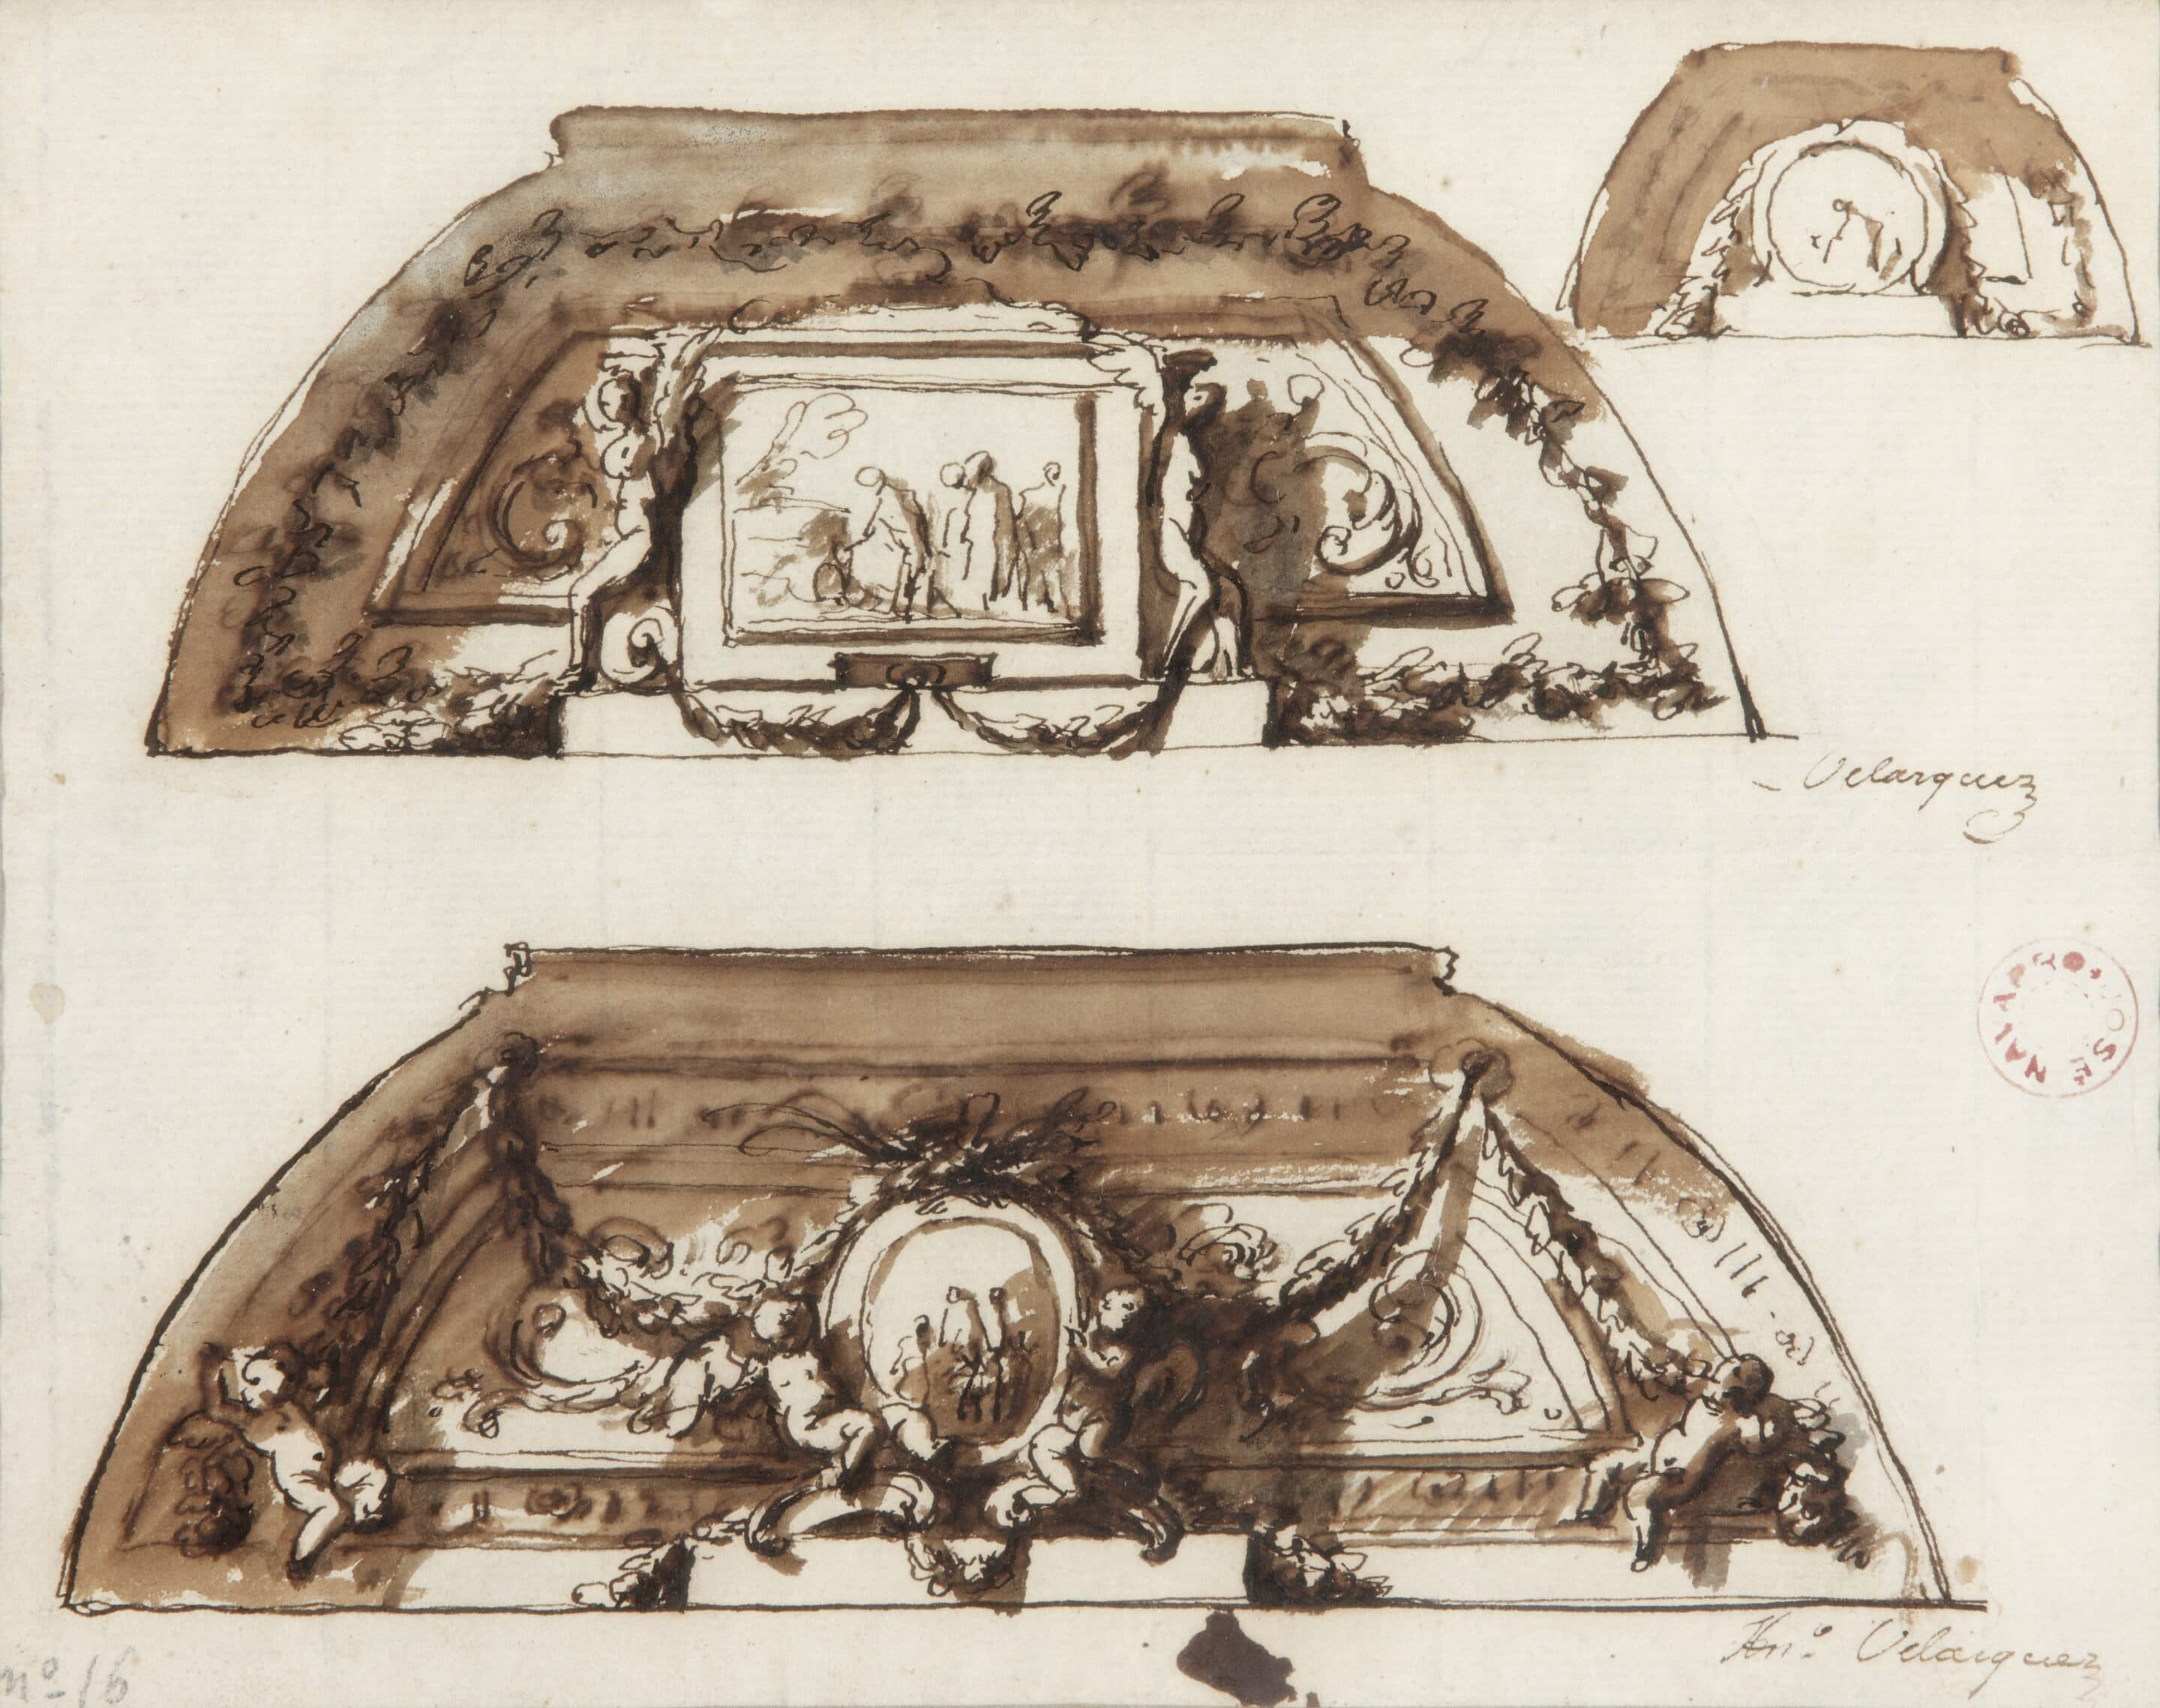 Design for the Decoration of a Palace Ceiling - Antonio González Velázquez